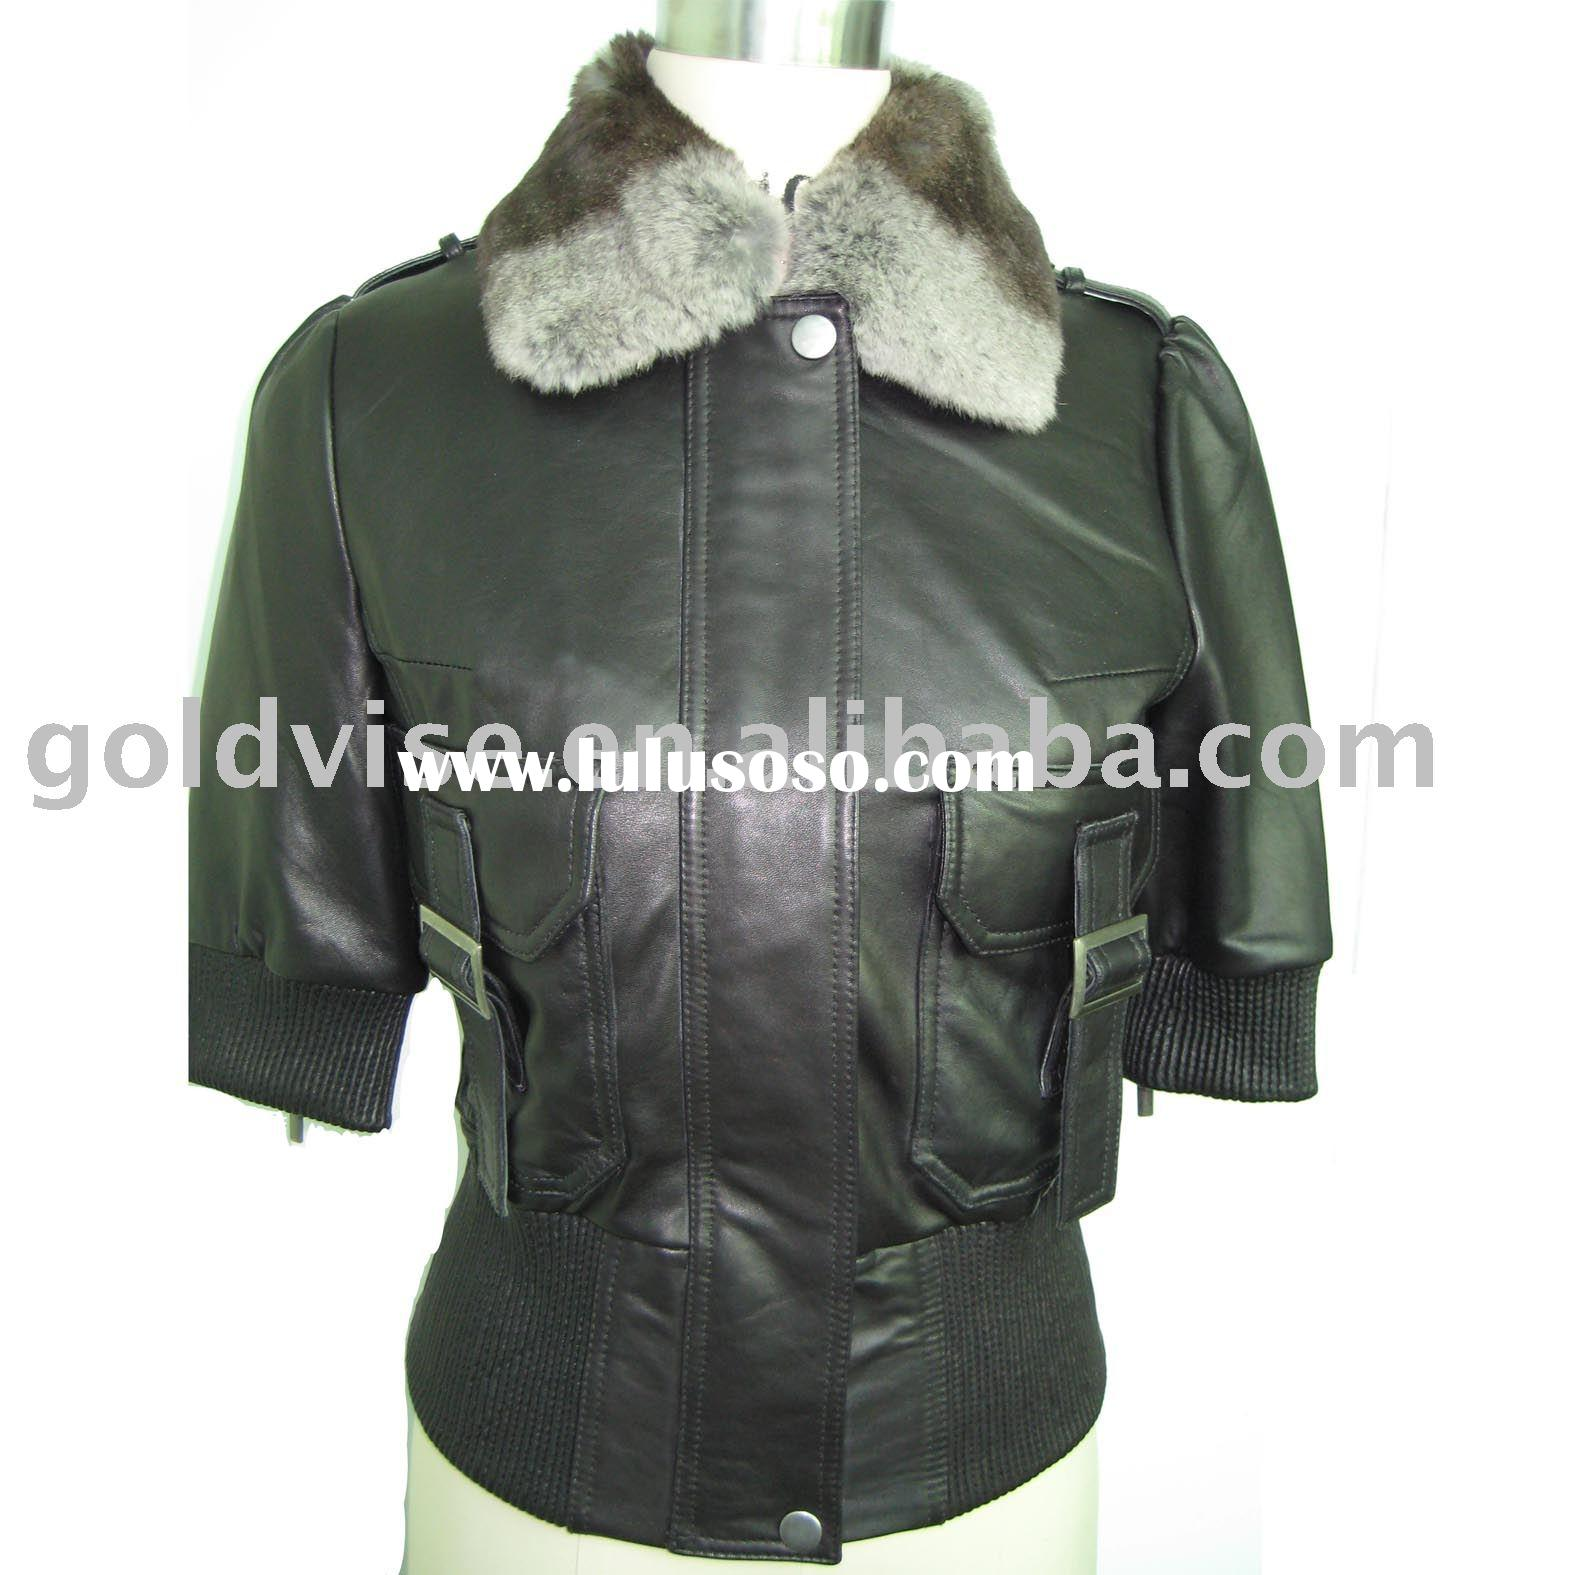 leather garment, lady's leather garment